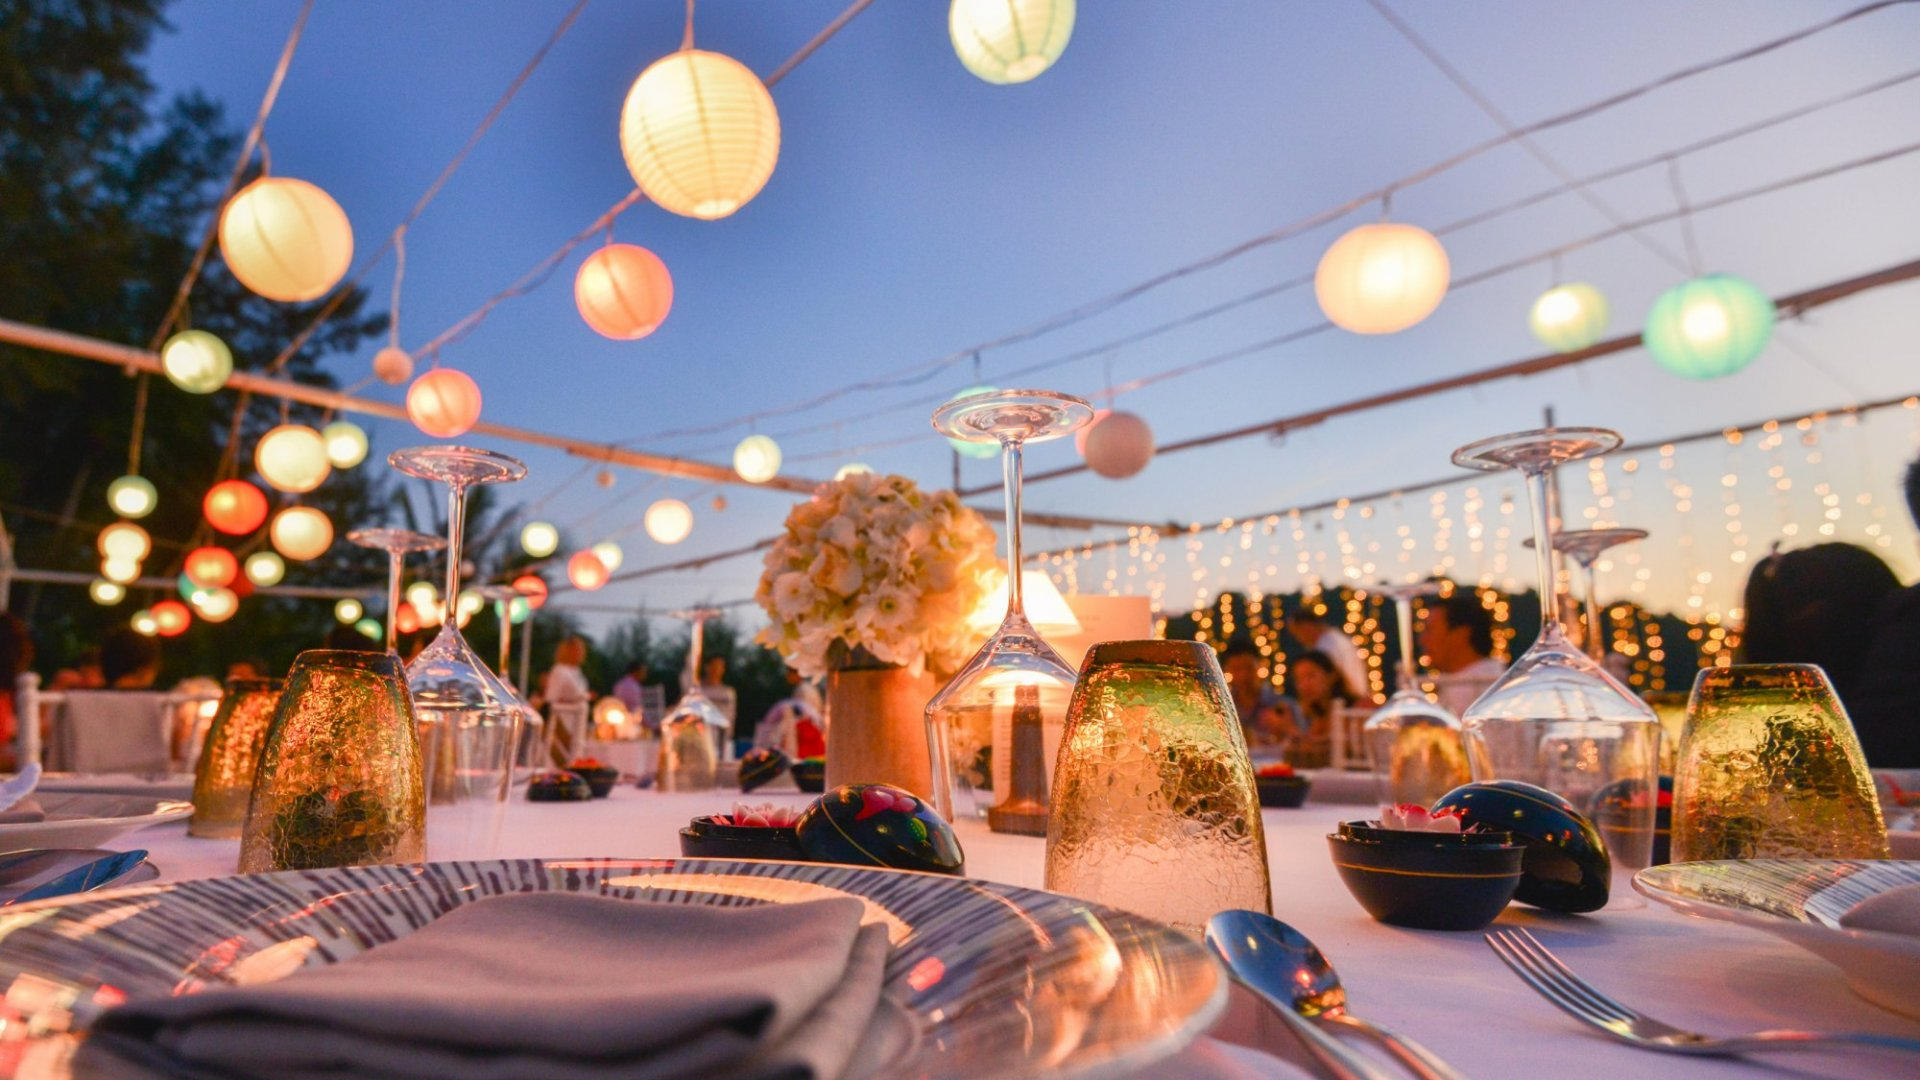 5 Essential Tips for Hosting a Stylish Event on a Budget From Two Fashion Week Veterans